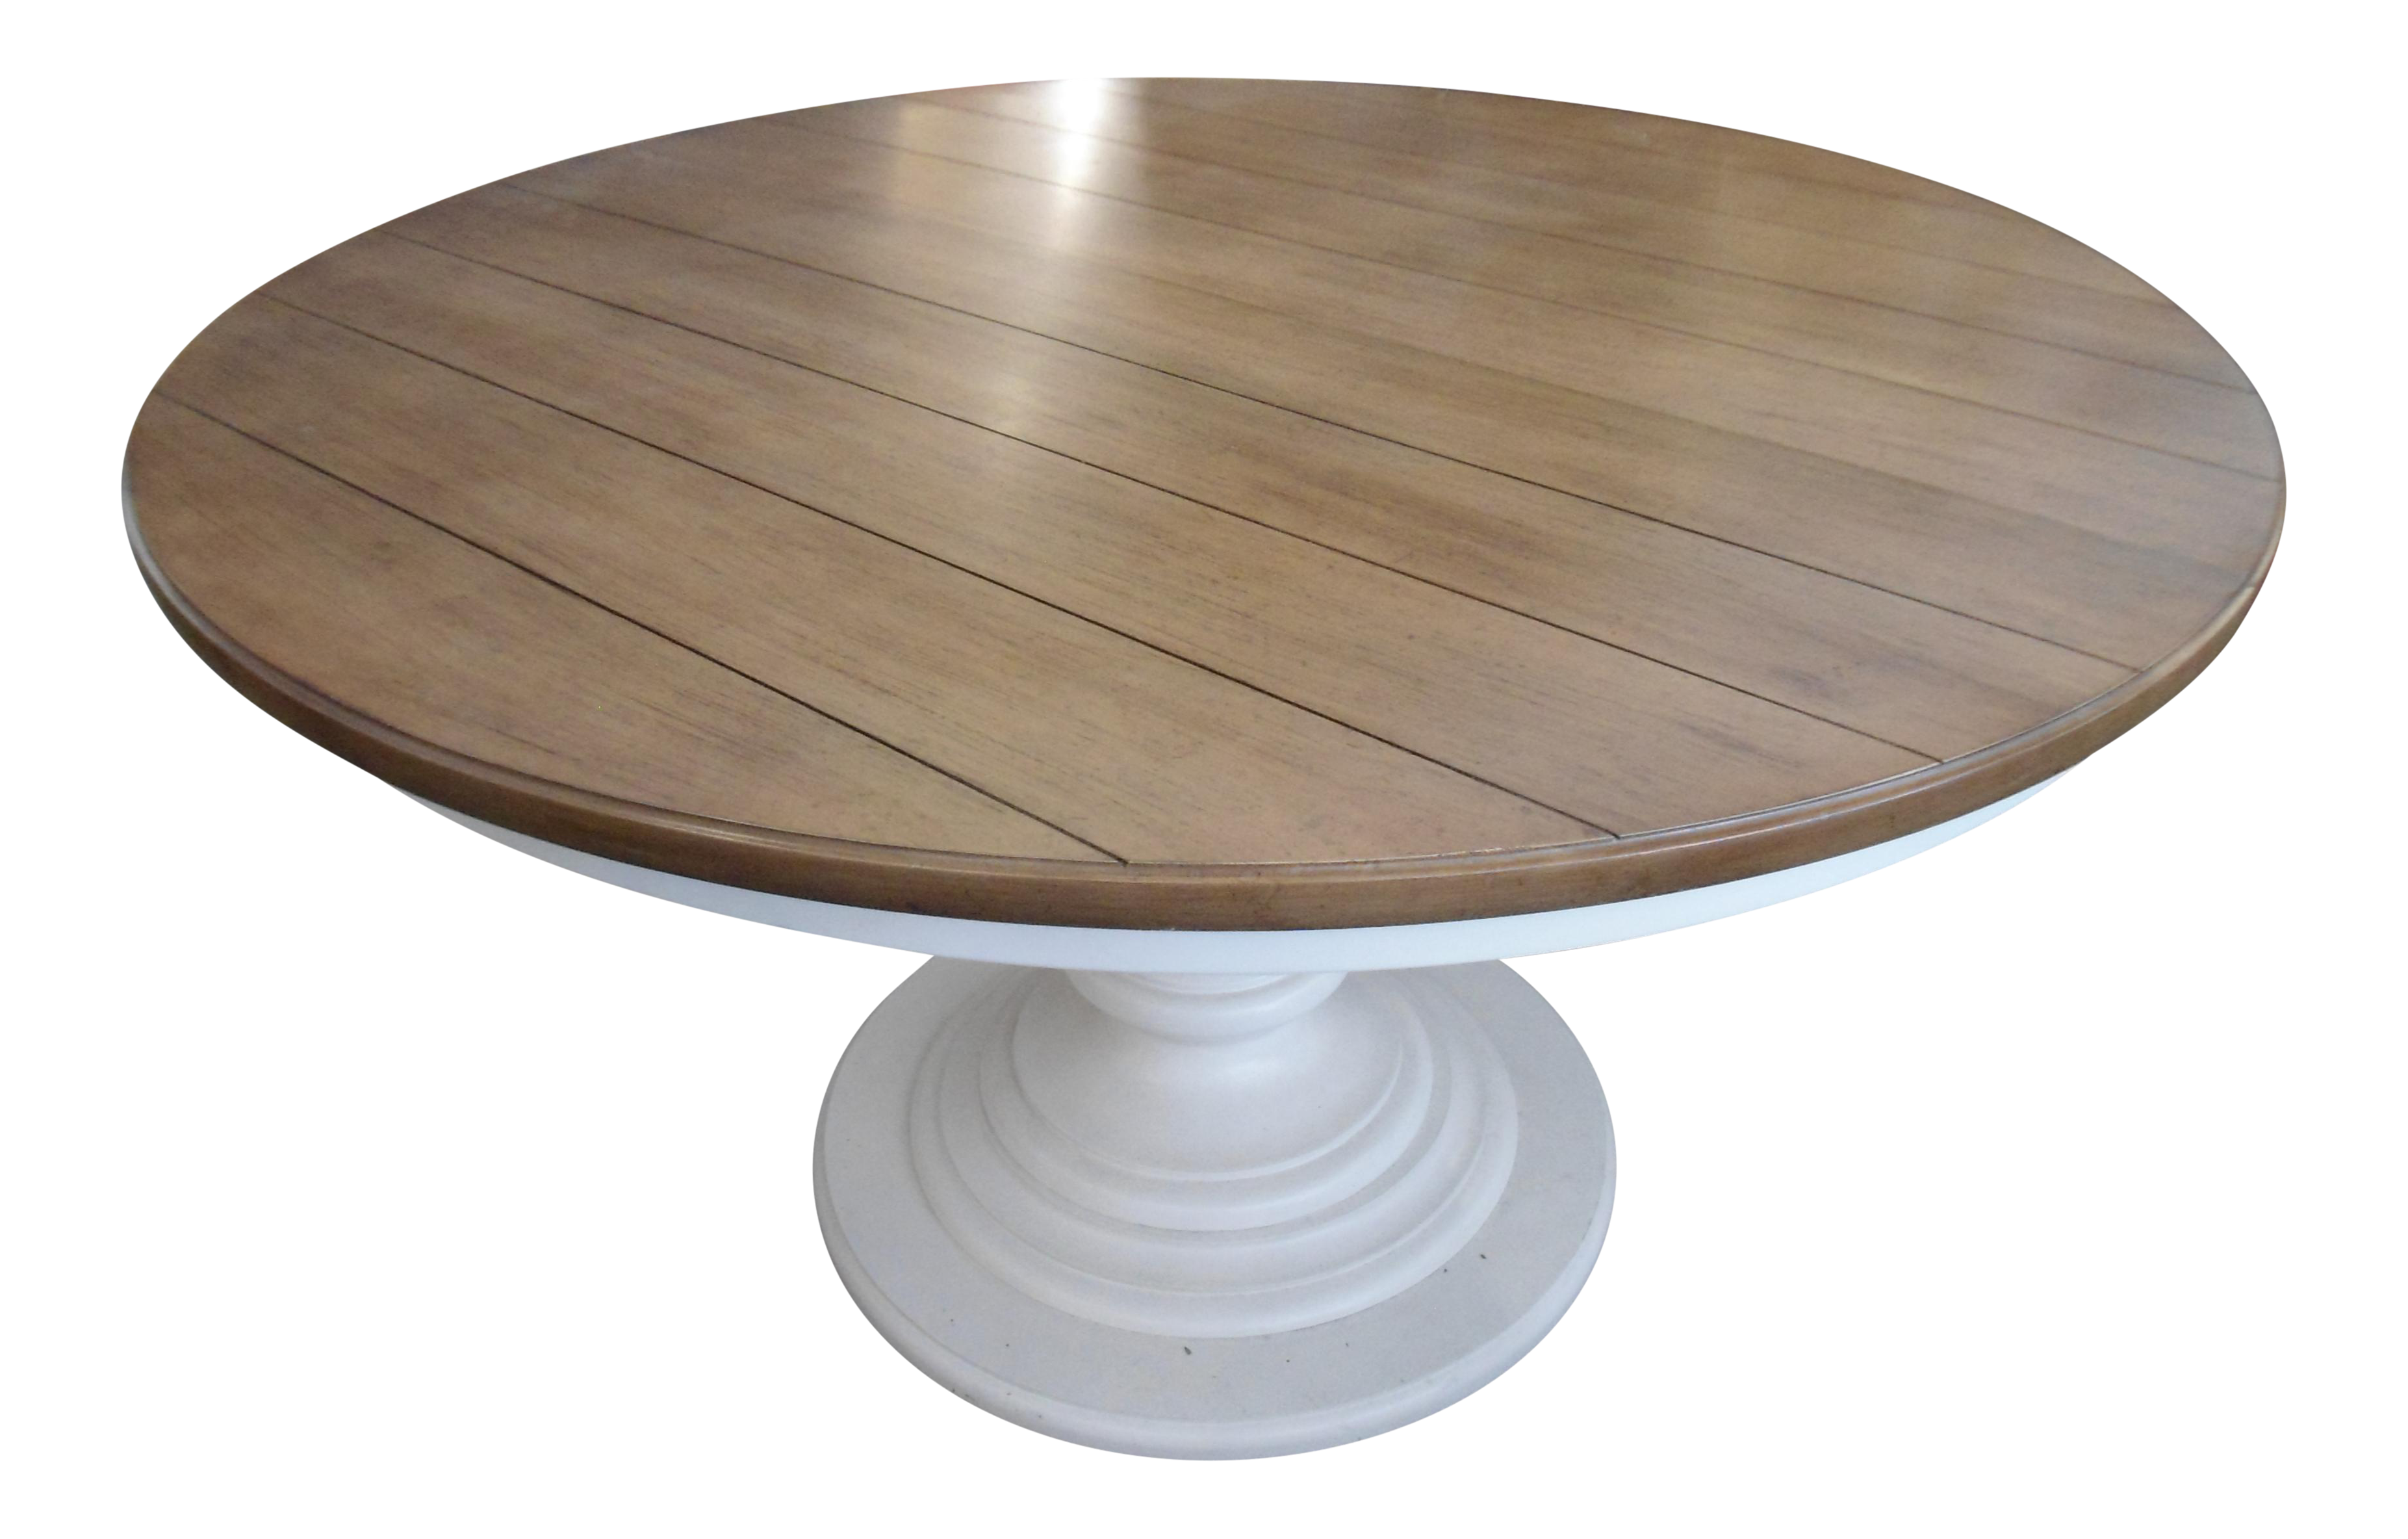 Wood Top amp White Pedestal Base Round Kitchen Table Chairish : 55c9dca9 7bc8 4822 a2e5 abb3970754efaspectfitampwidth640ampheight640 from www.chairish.com size 640 x 640 jpeg 23kB